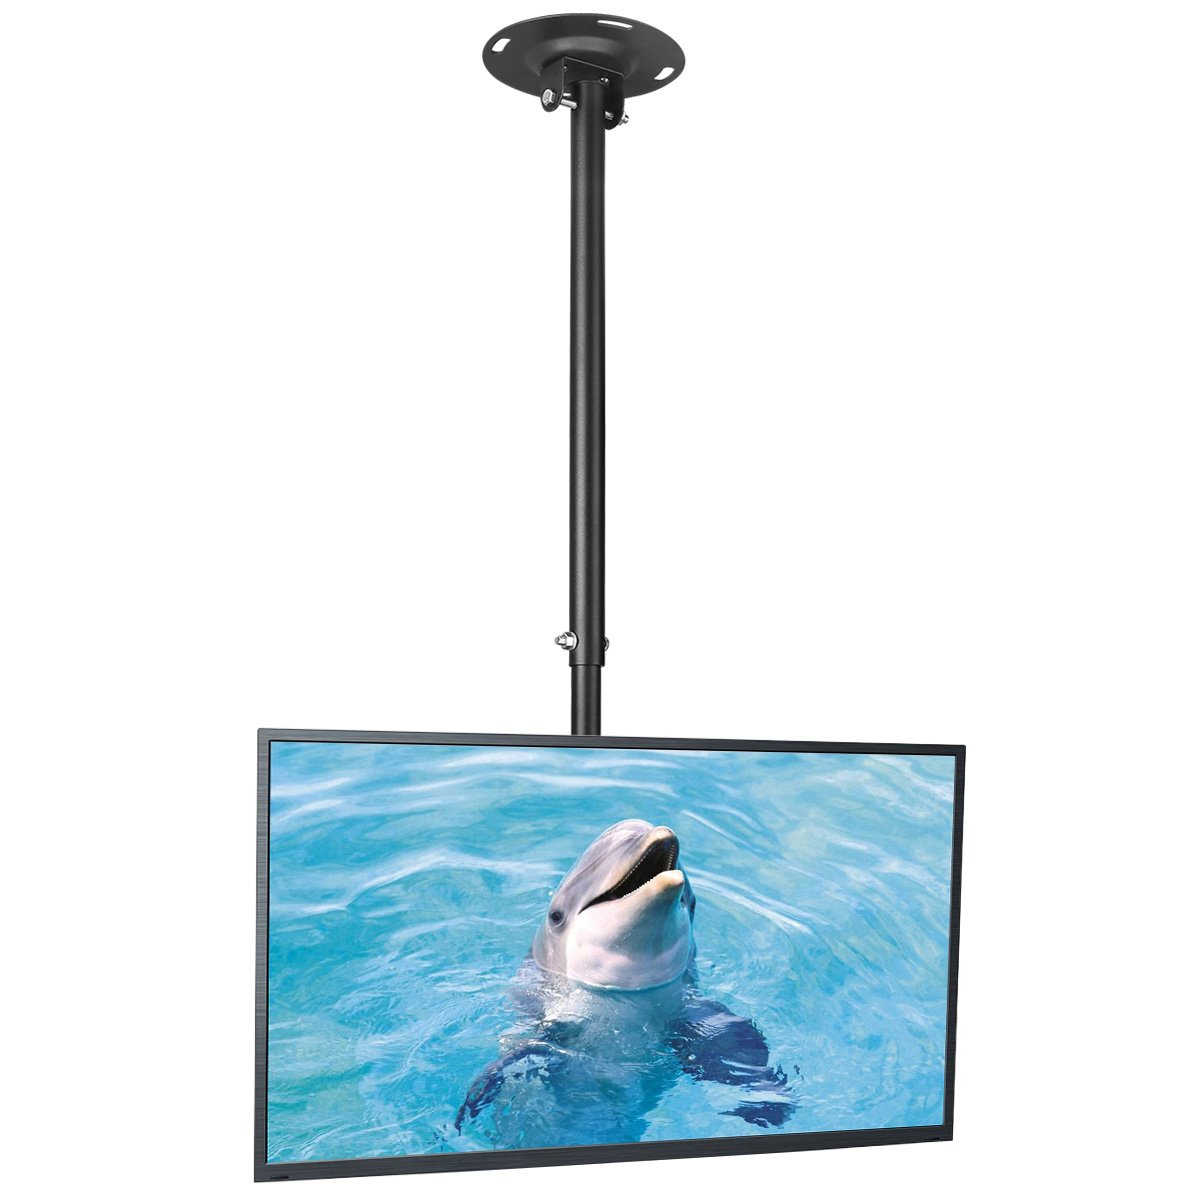 Suptek Ceiling TV Wall Mount Fits Most 26-50'' LCD LED Plasma Flat Panel Display with Max VESA 400x400mm Max Loaded up to 45kg Height Adjustable with Tilt and Swivel Motion MC4602